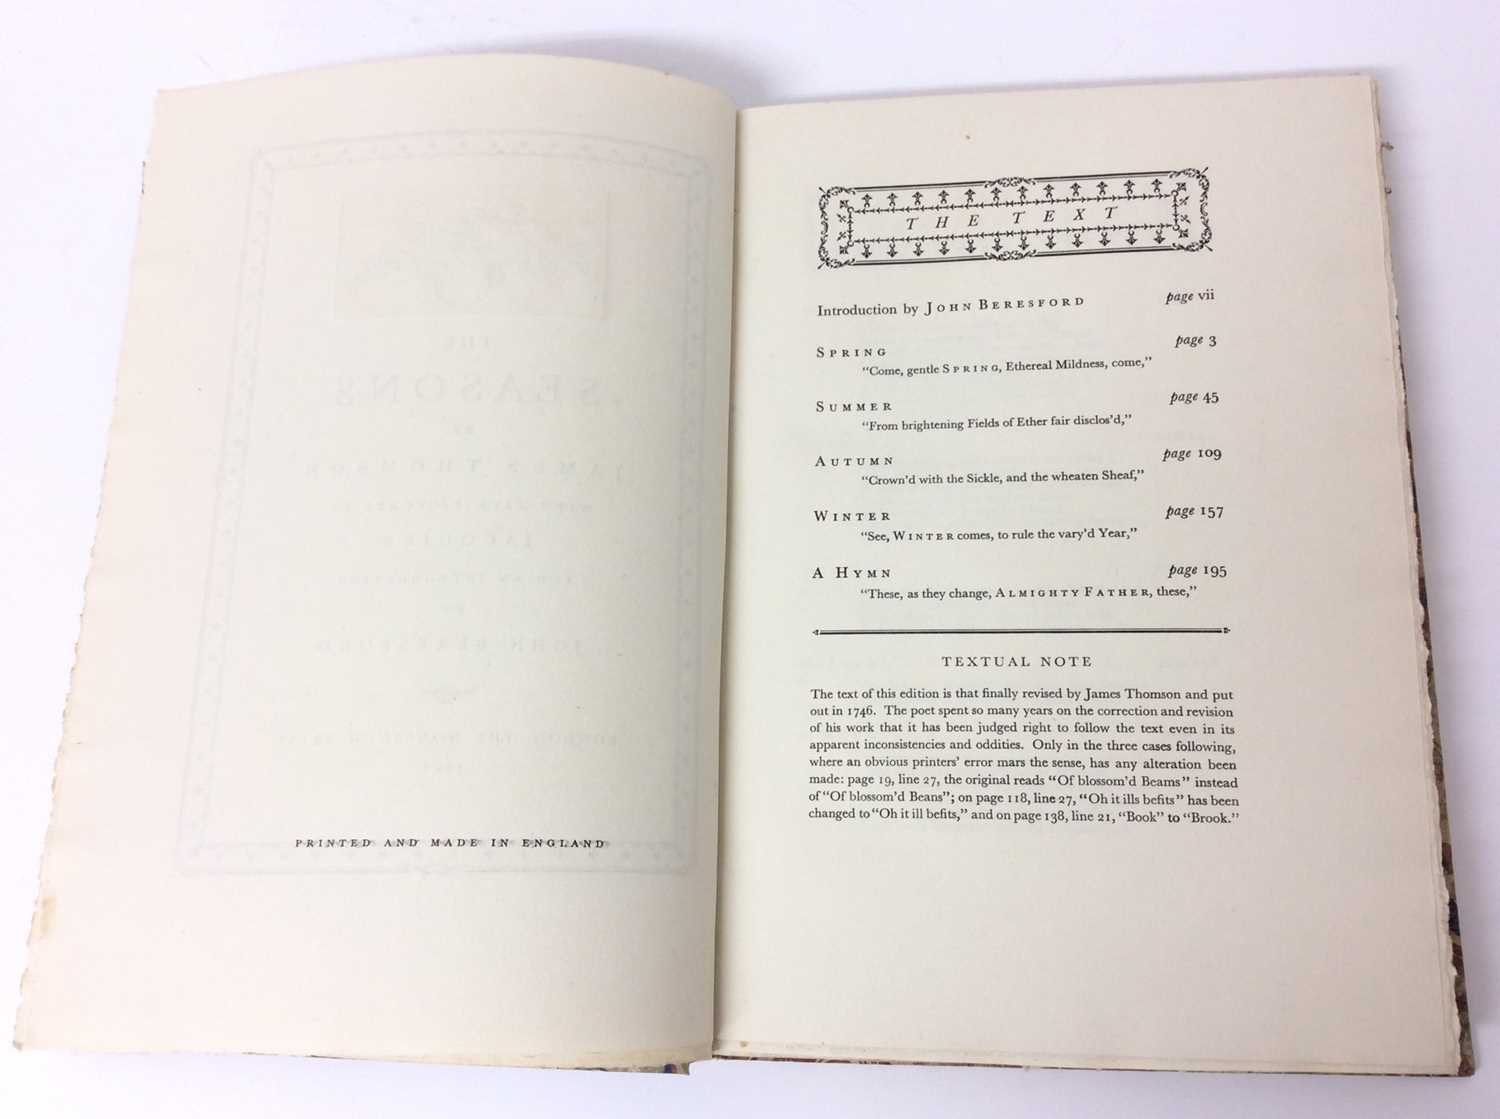 The Seasons by James Thomson, Nonesuch Press 1927, numbered 186 out of 1,500 copies, 1927 - Image 3 of 10